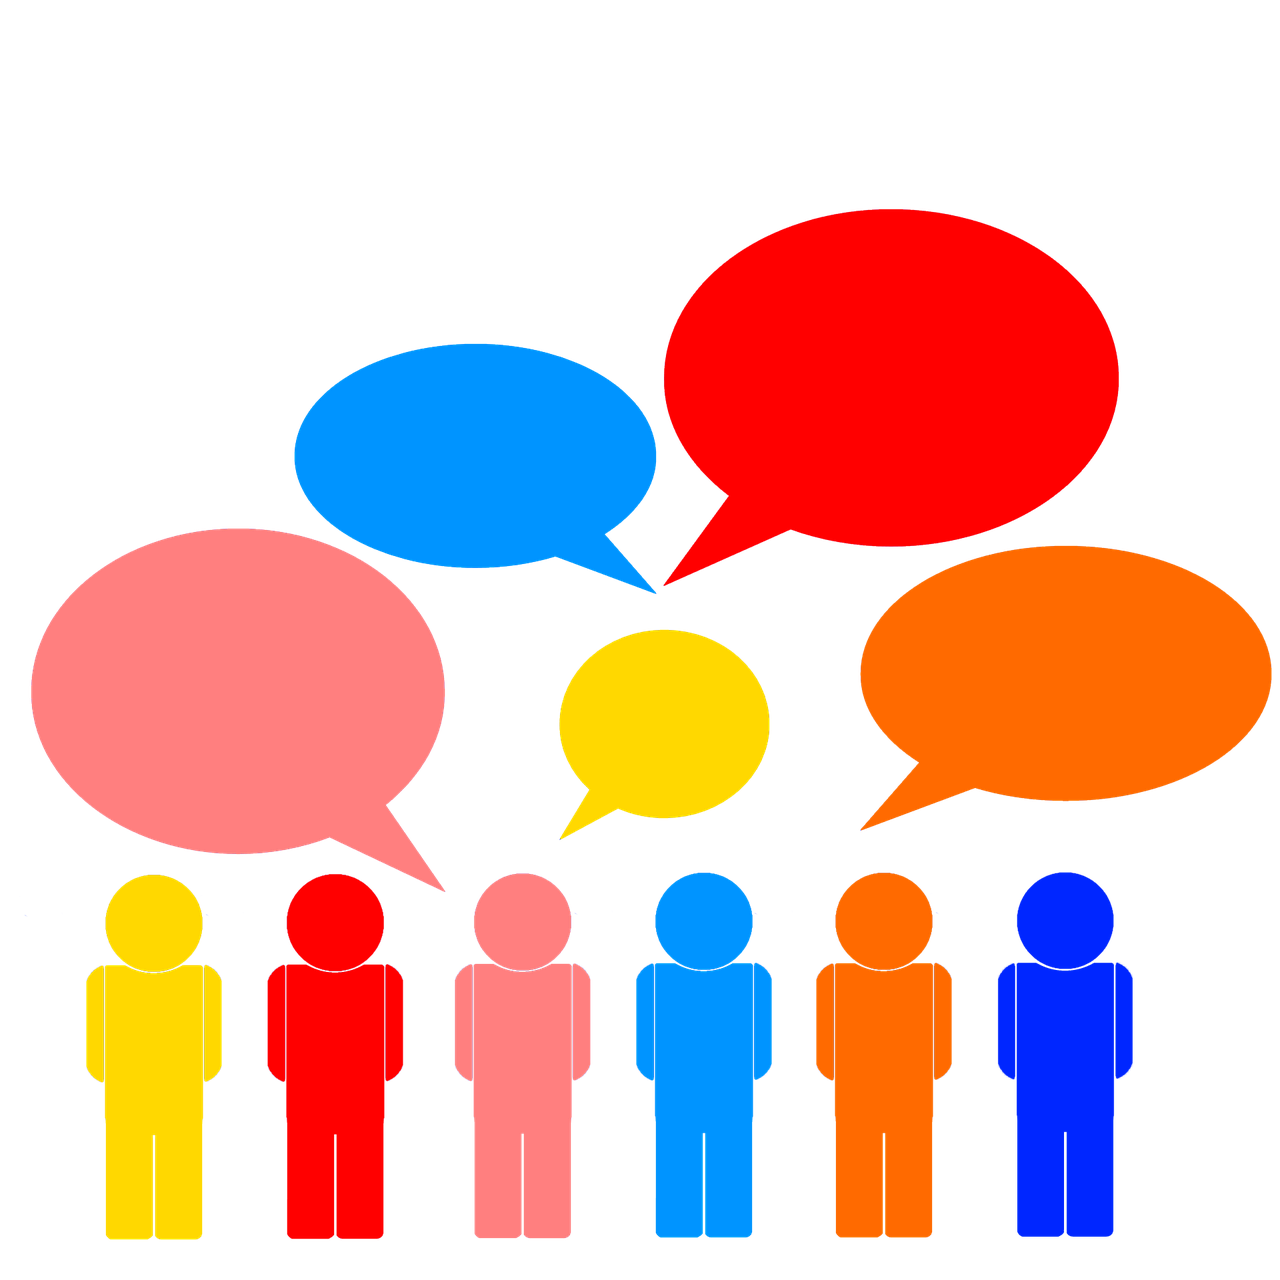 A row of colorful cut-out figures under five floating speech bubbles. From left to right, they are colored: yellow, red, pink, light blue, orange, and dark blue. The bubbles, from left to right, are: pink, light blue, yellow, red, and orange. Source: https://www.bcse.org/lets-talk-talanoa-how-clean-energy-can-power-ambition/